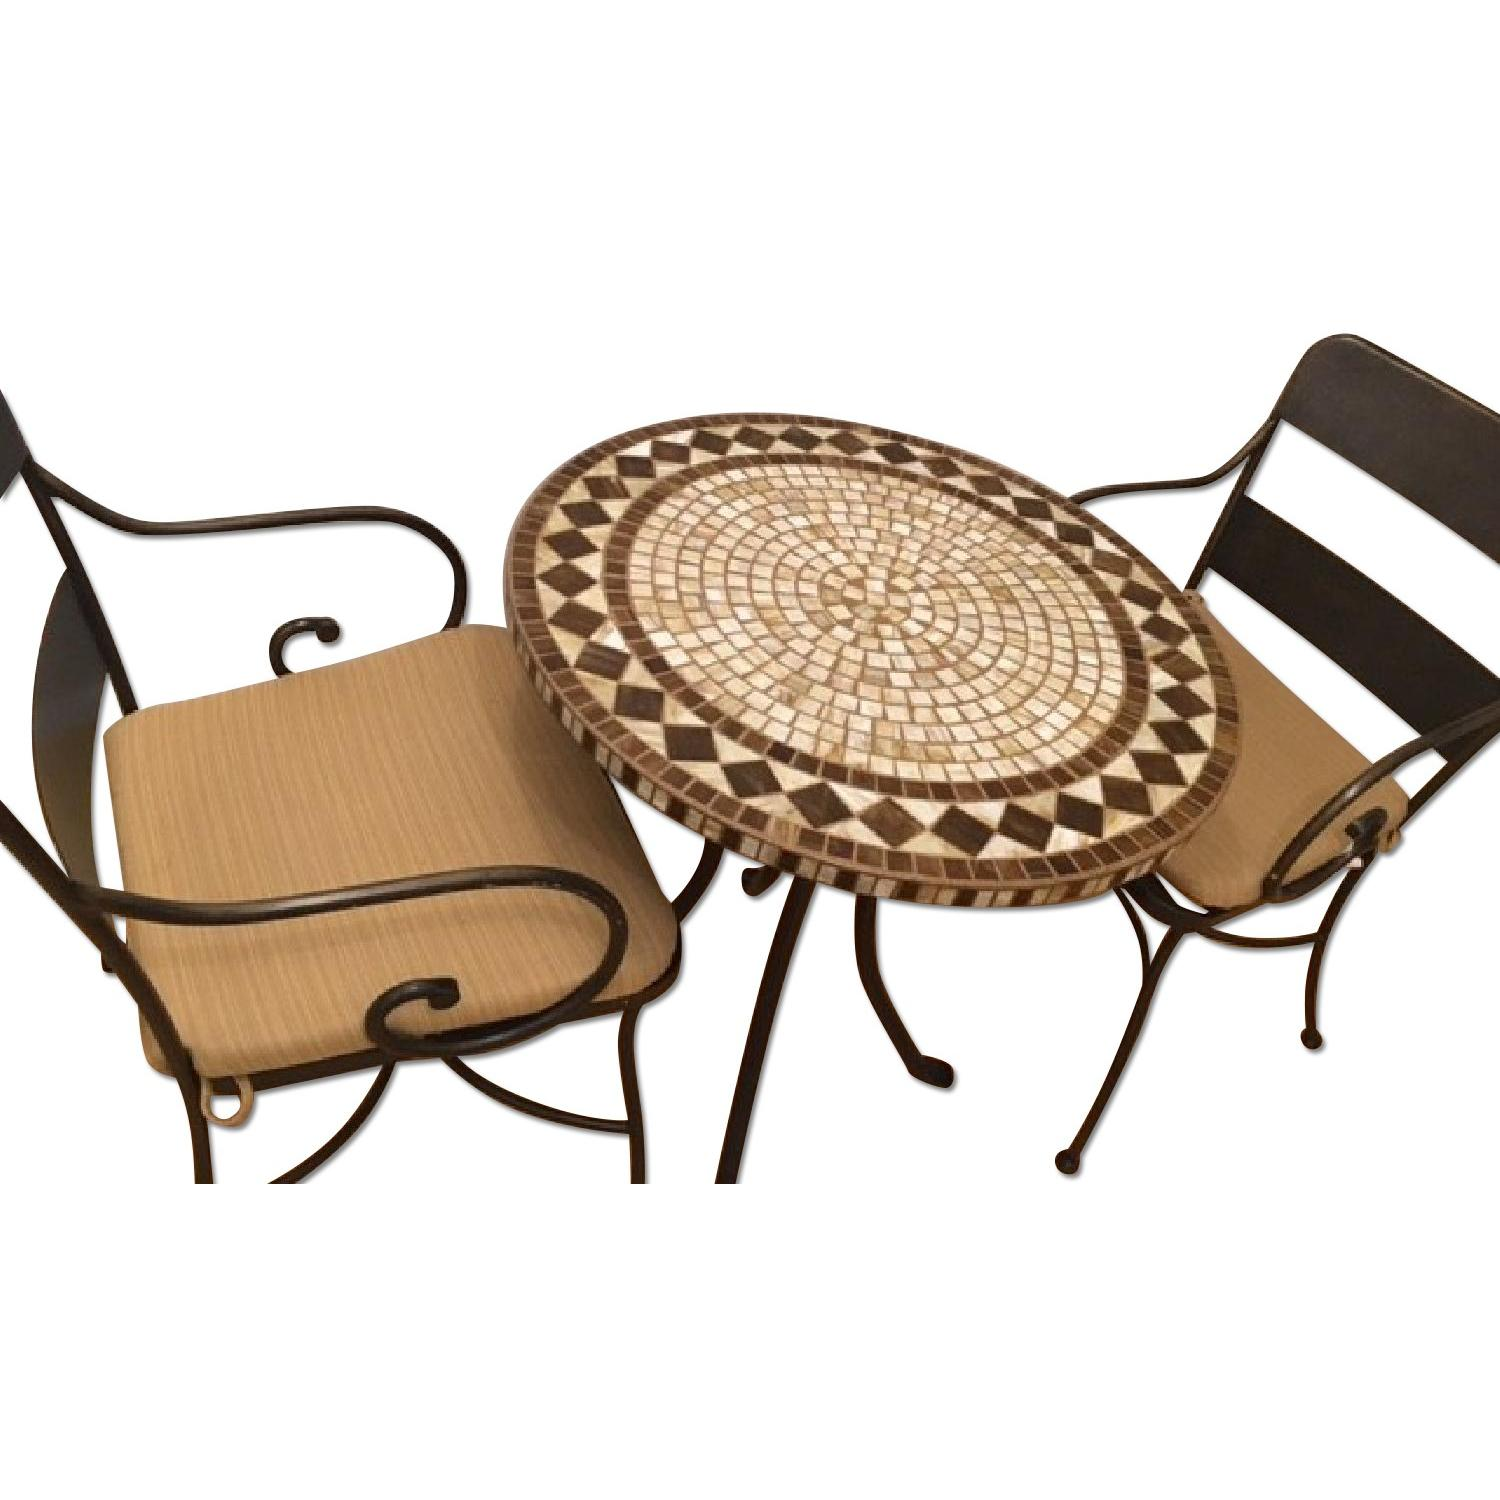 Mosaic Patio Table w/ 2 Chairs - image-4